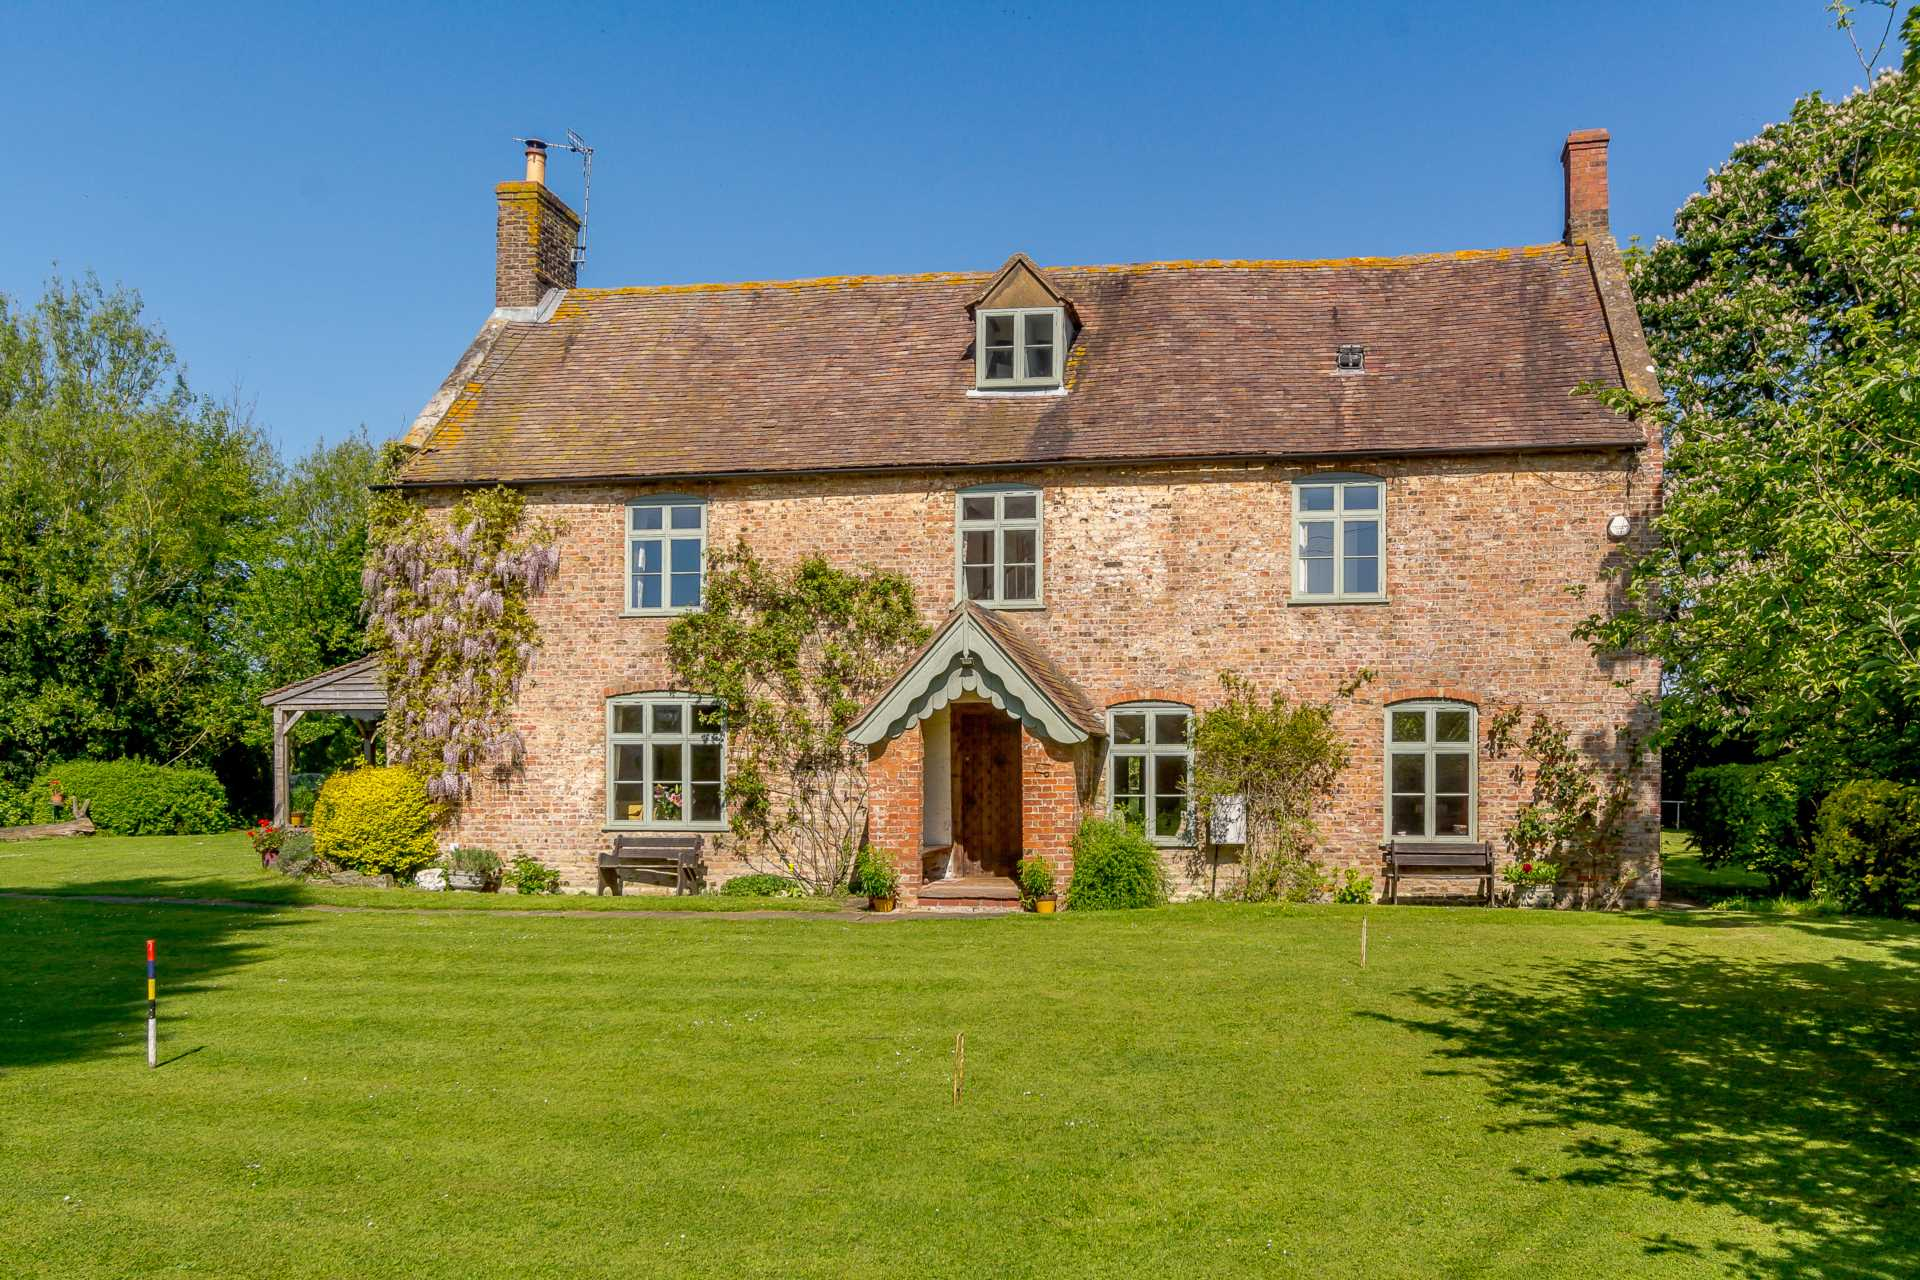 beautiful brick English country cottage home in countryside green windows